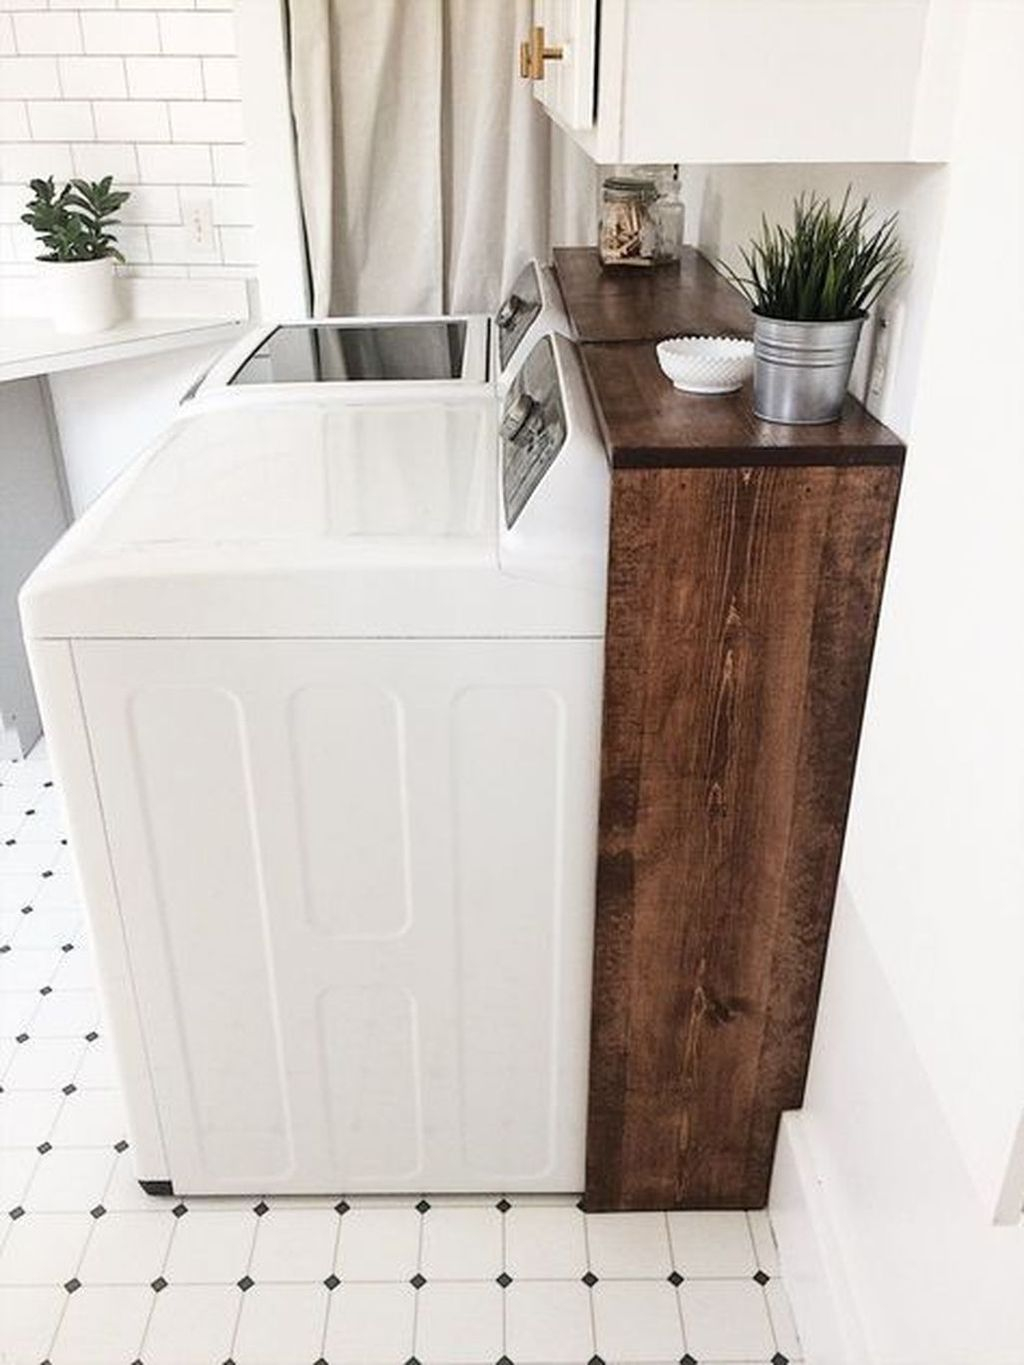 Favored Laundry Room Organization Ideas To Try 16